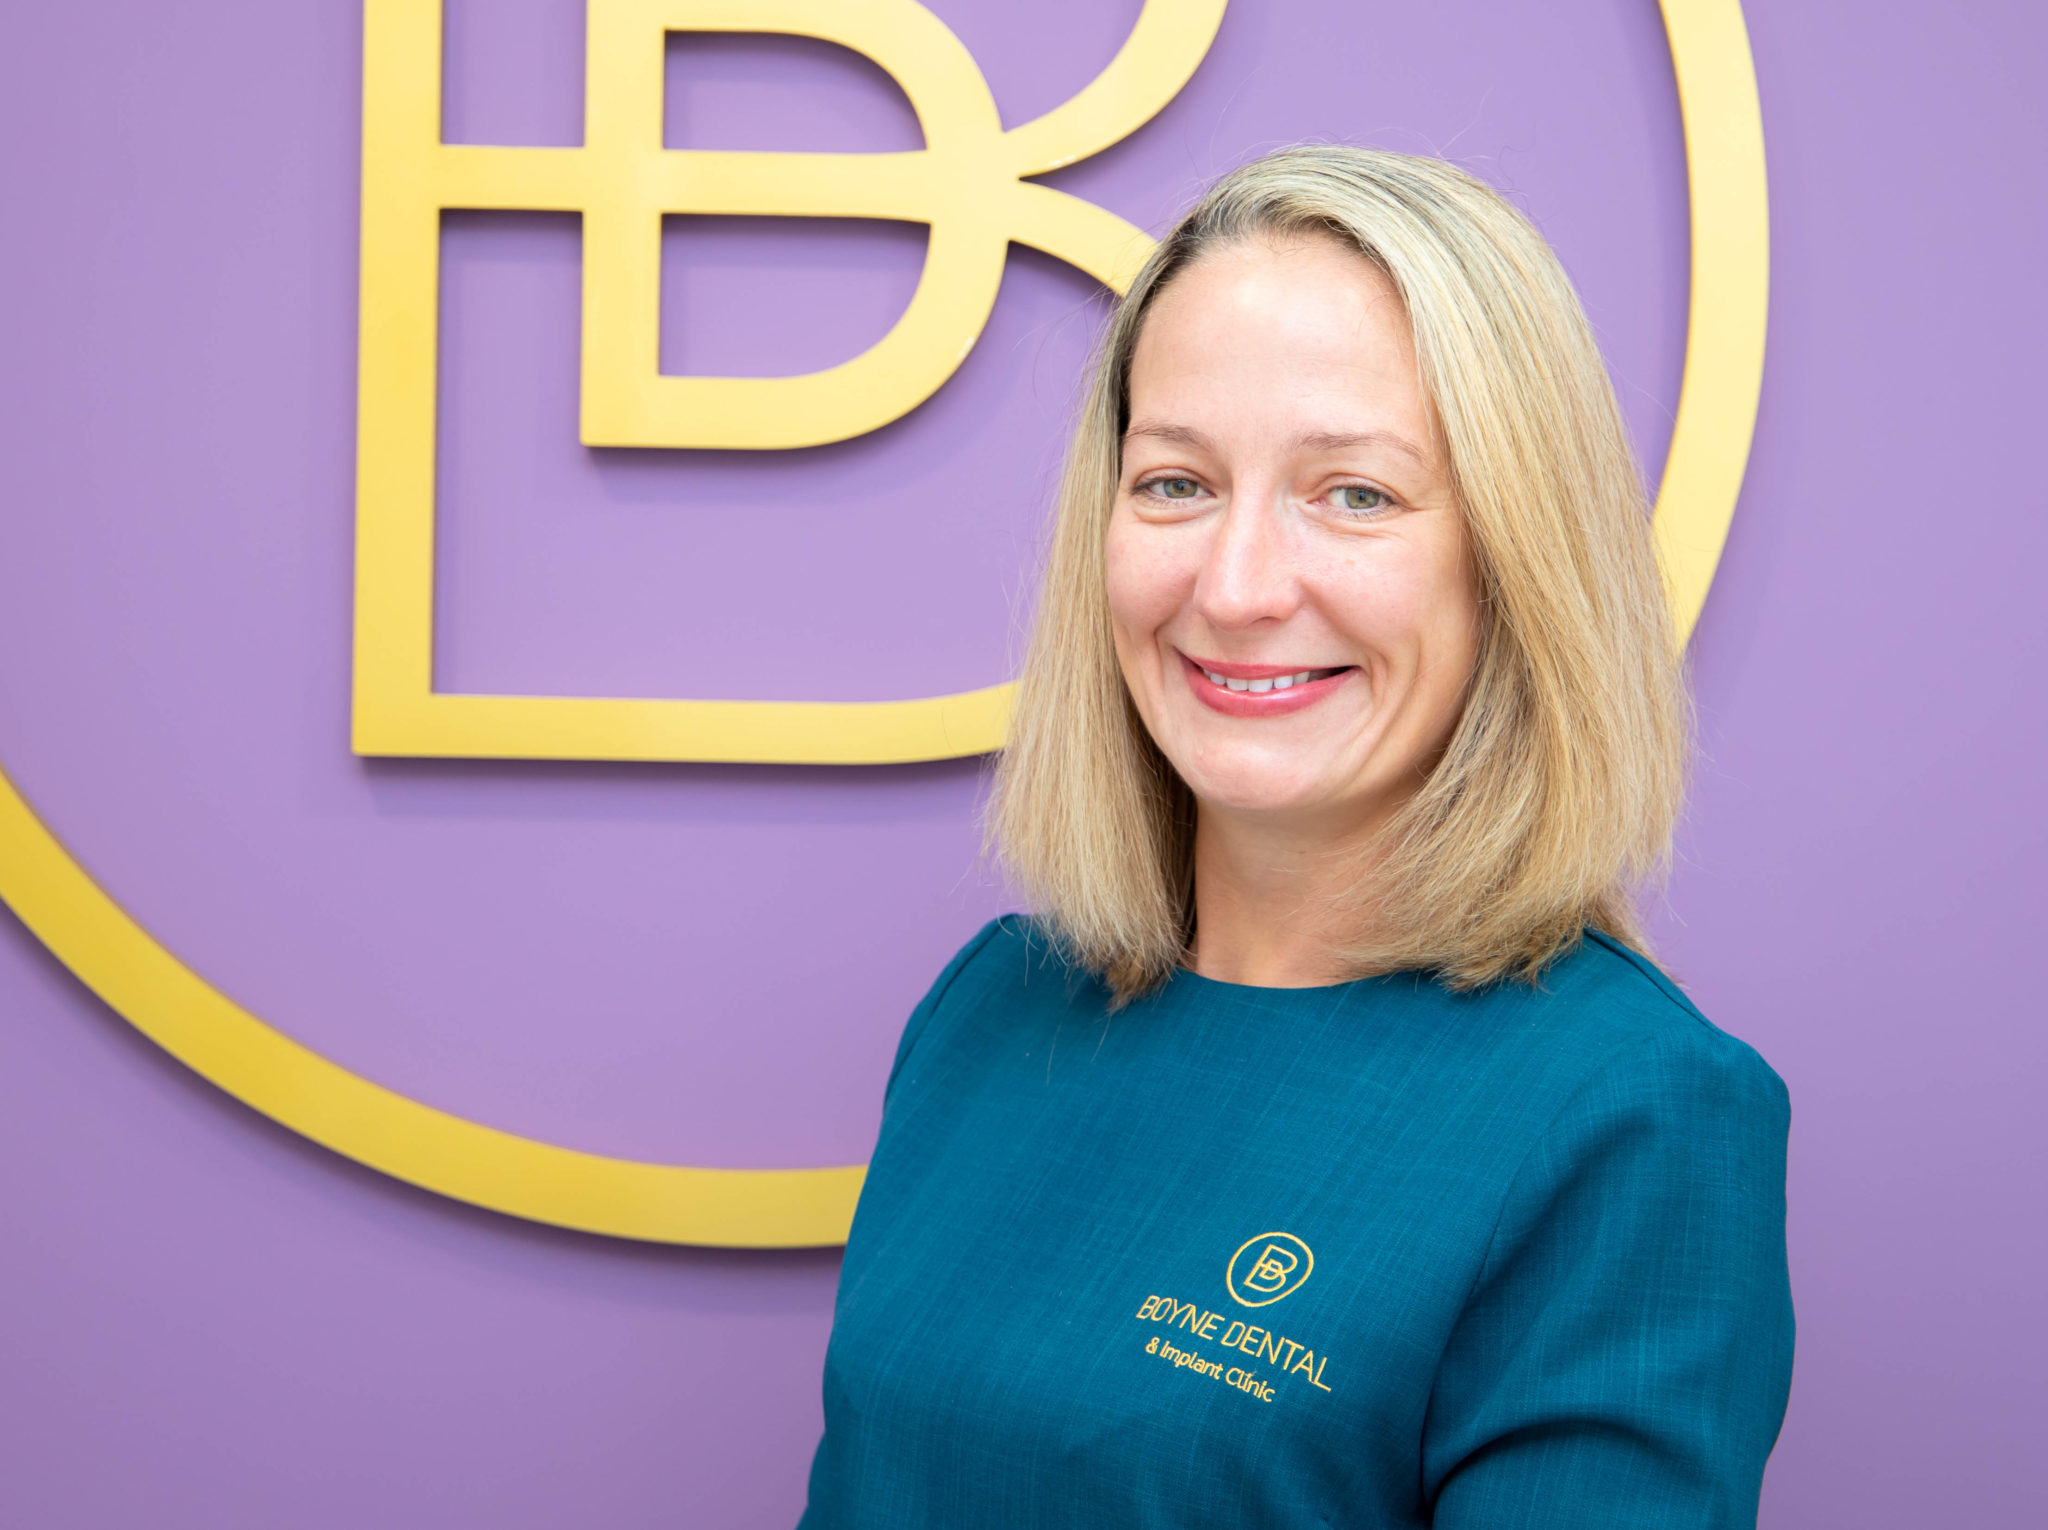 Adrienne Pritchard - Admin at Boyne Dental